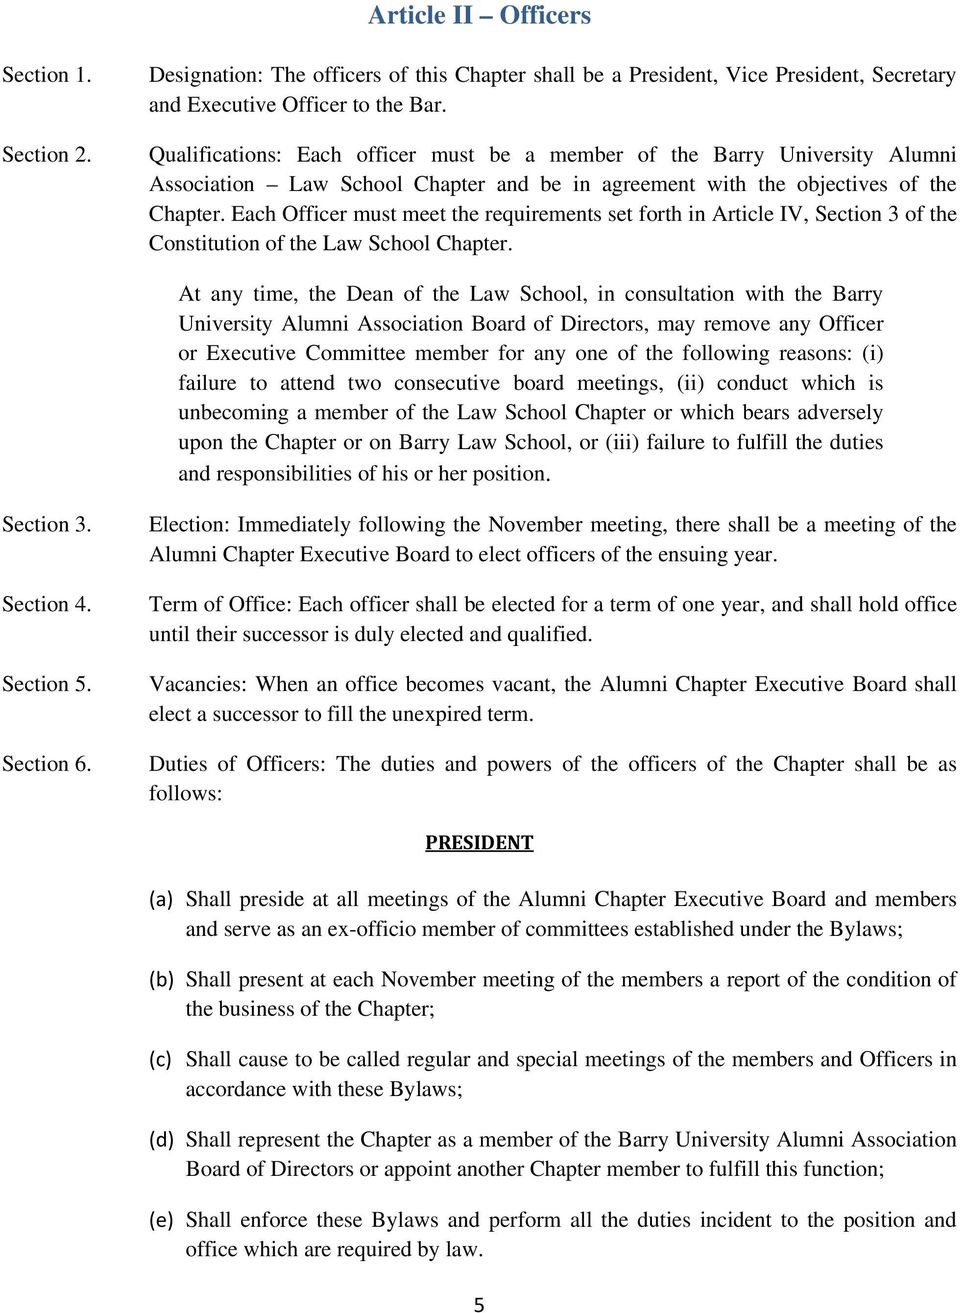 Each Officer must meet the requirements set forth in Article IV, Section 3 of the Constitution of the Law School Chapter.